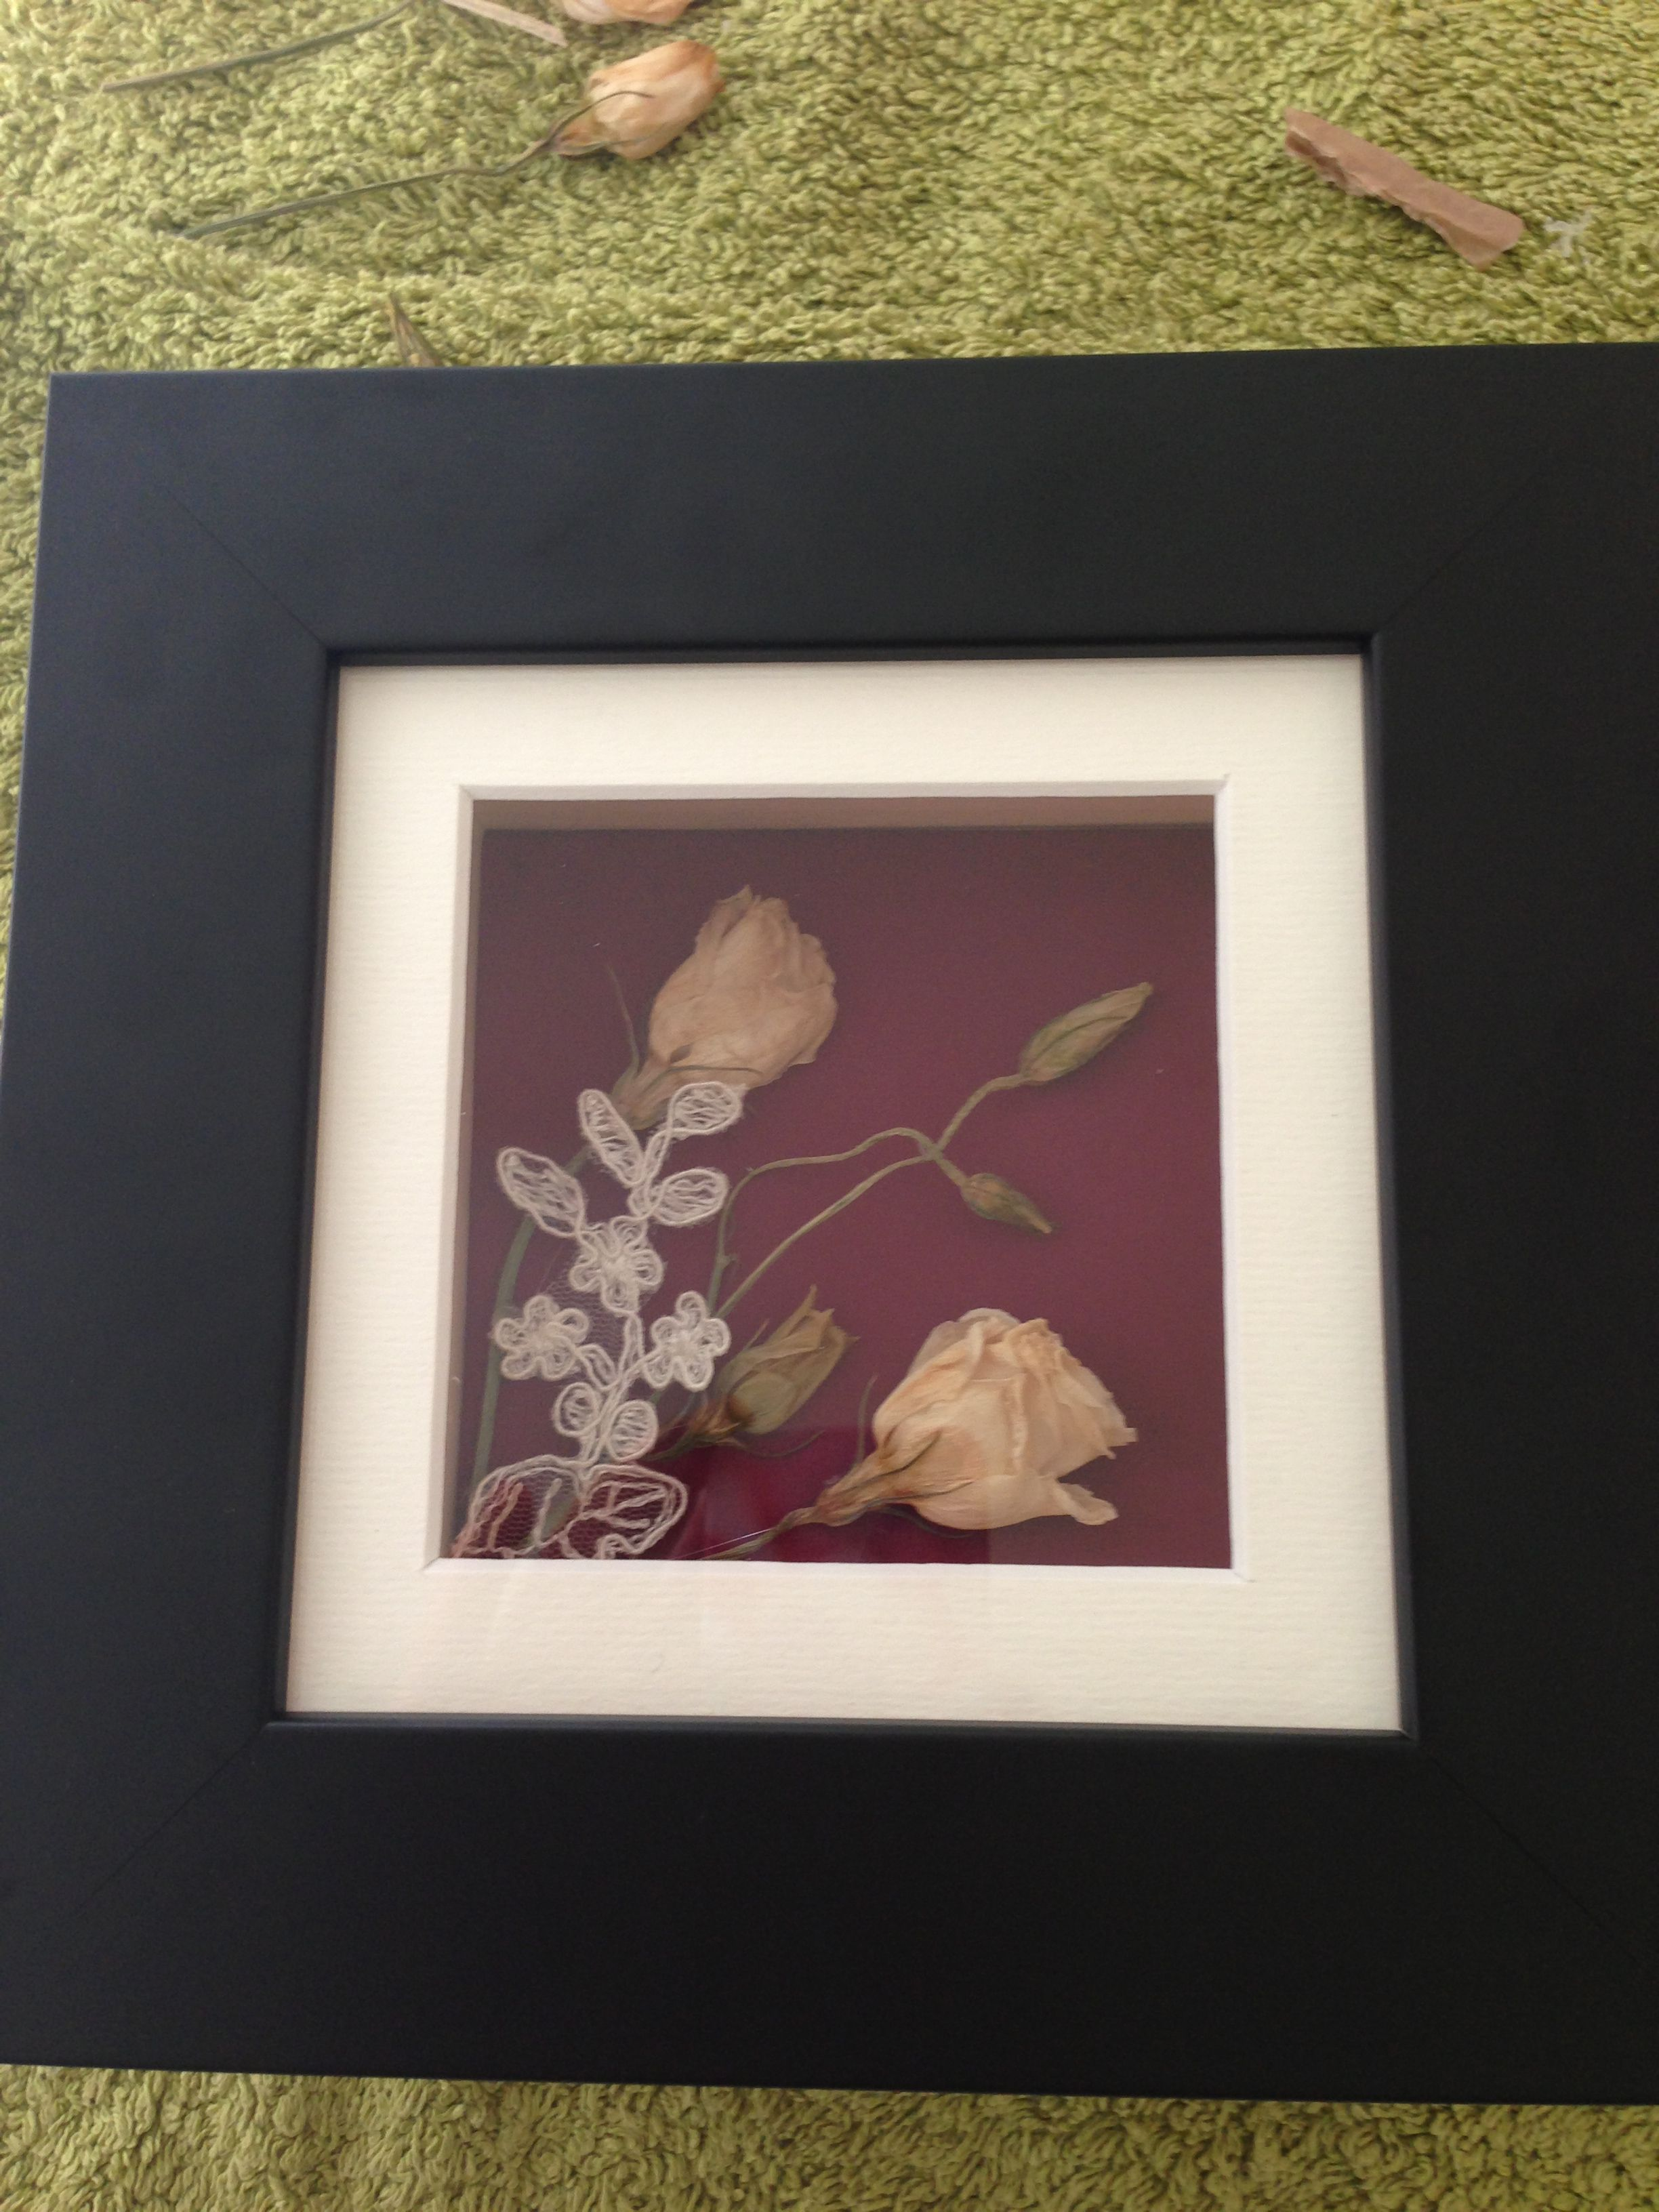 Dried Wedding Bouquet Flowers In Box Frame Homemade Xxxx Dried